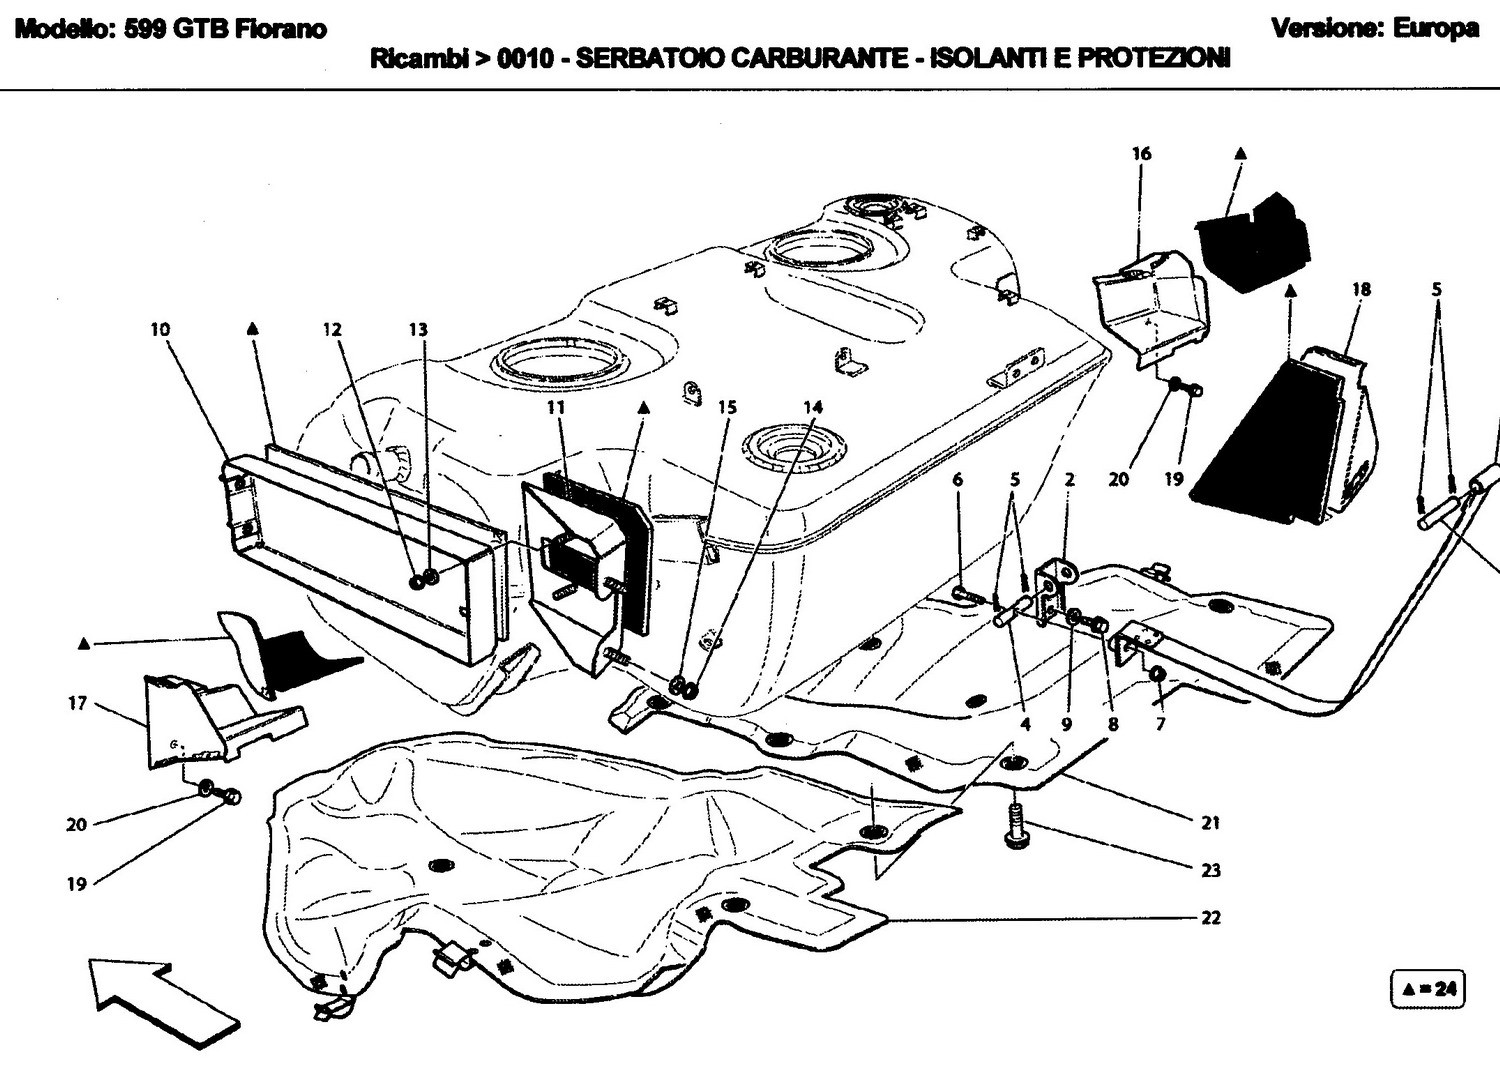 FUEL TANK - INSULATION AND PROTECTION